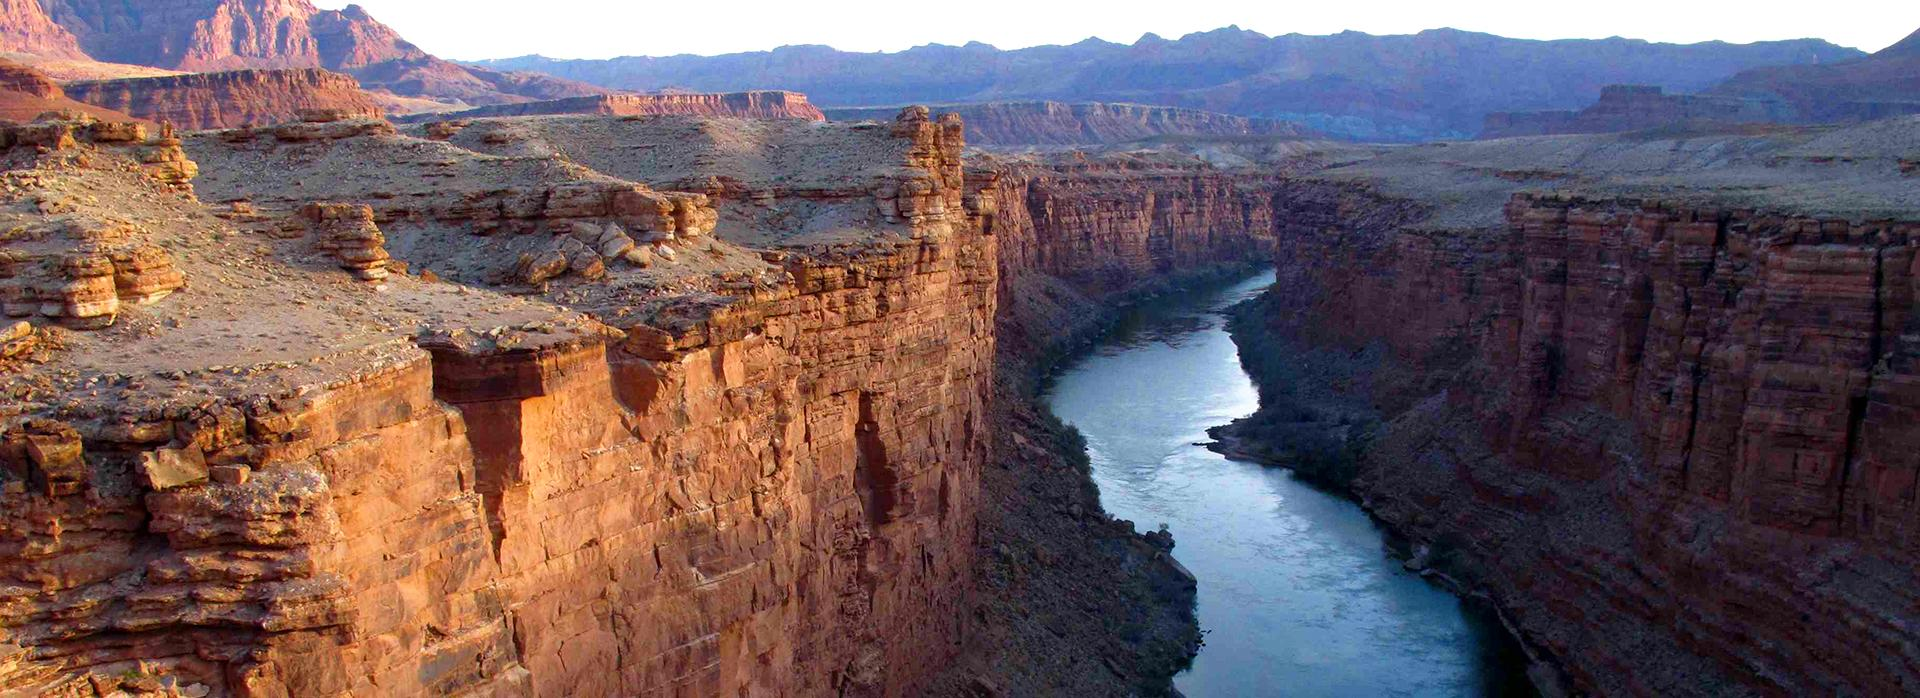 Colorado River Marble Canyon